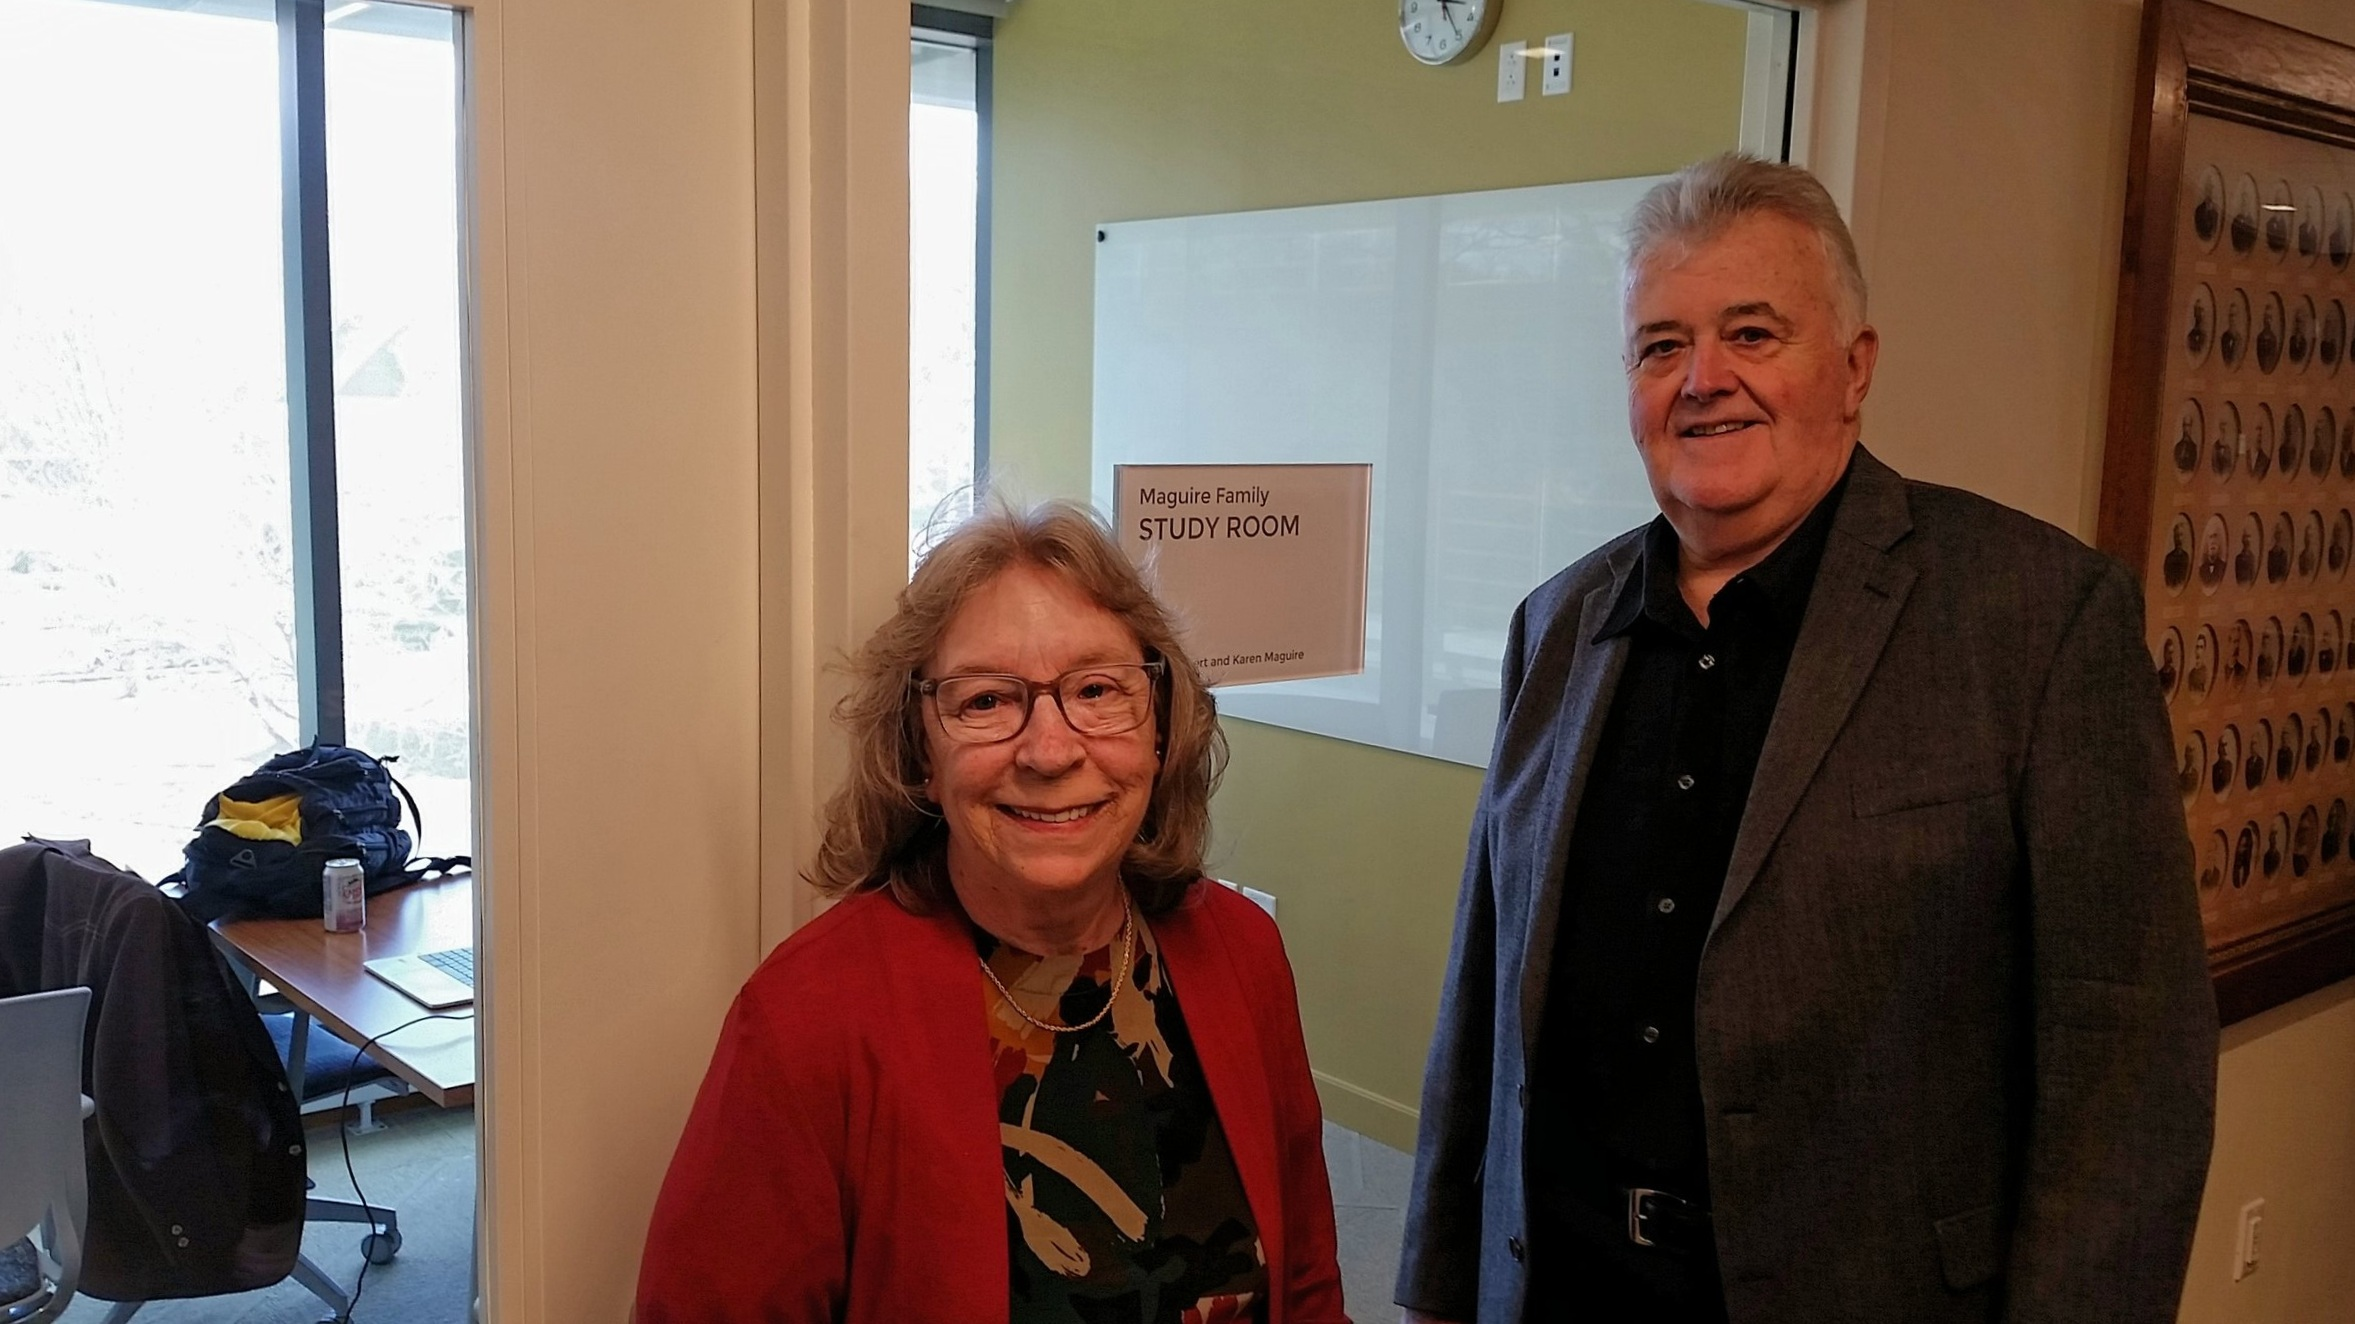 Karen and Robert Maguire, the proud patrons of the Maguire Family Study Room